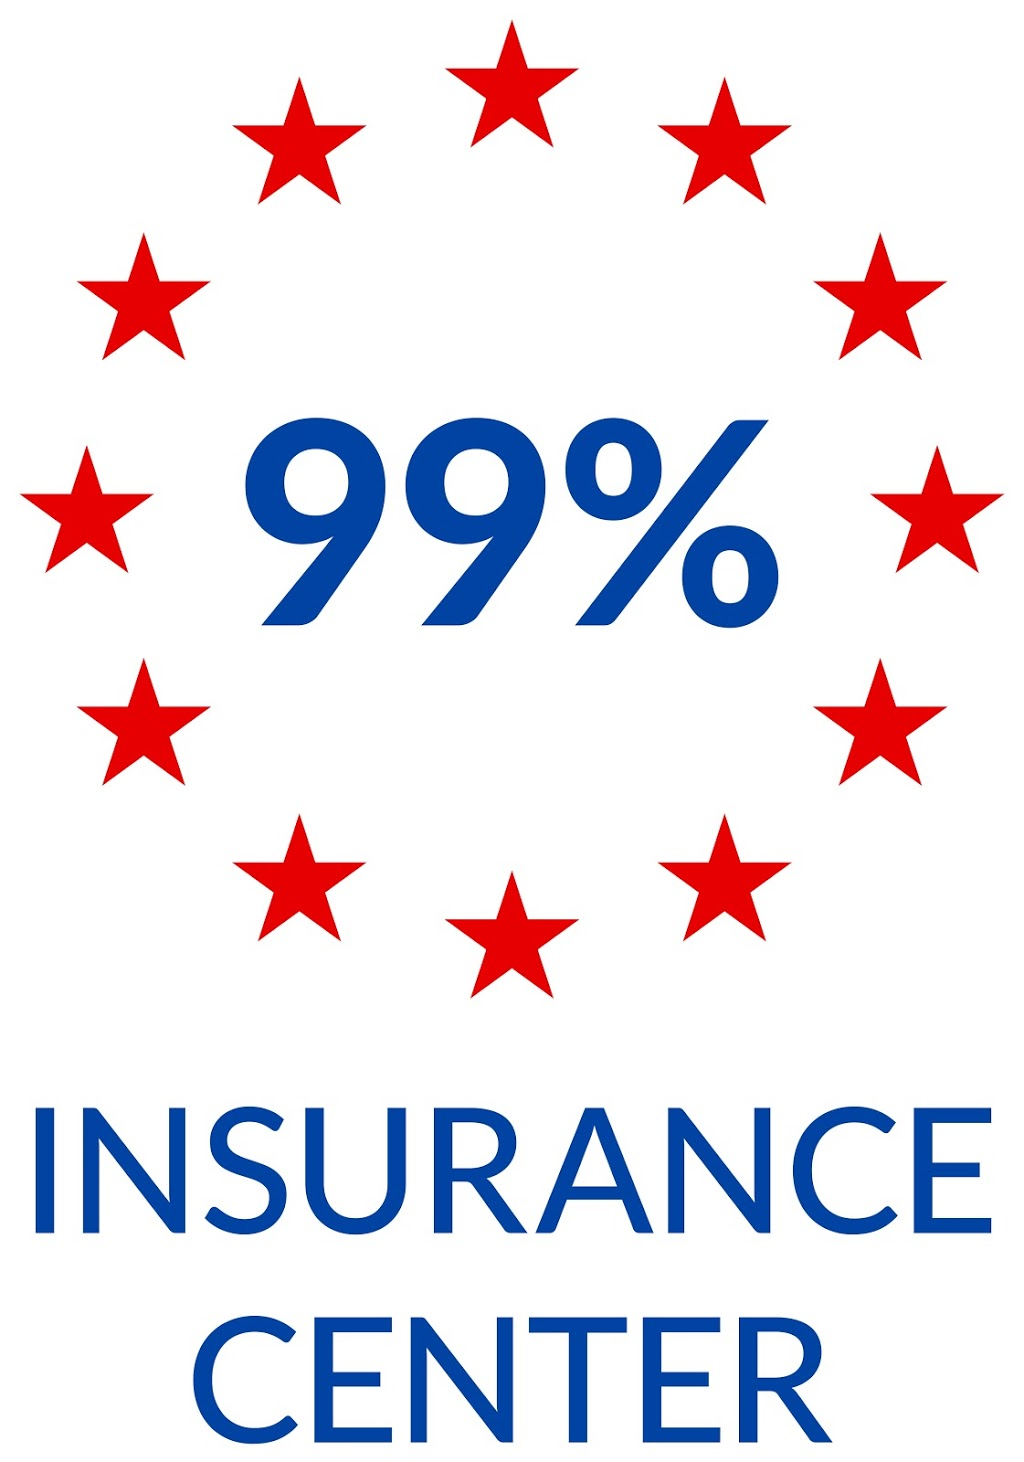 99% Insurance Center | insurance agency | 2219, 2430 N Broadway, Los Angeles, CA 90031, USA | 3232210727 OR +1 323-221-0727